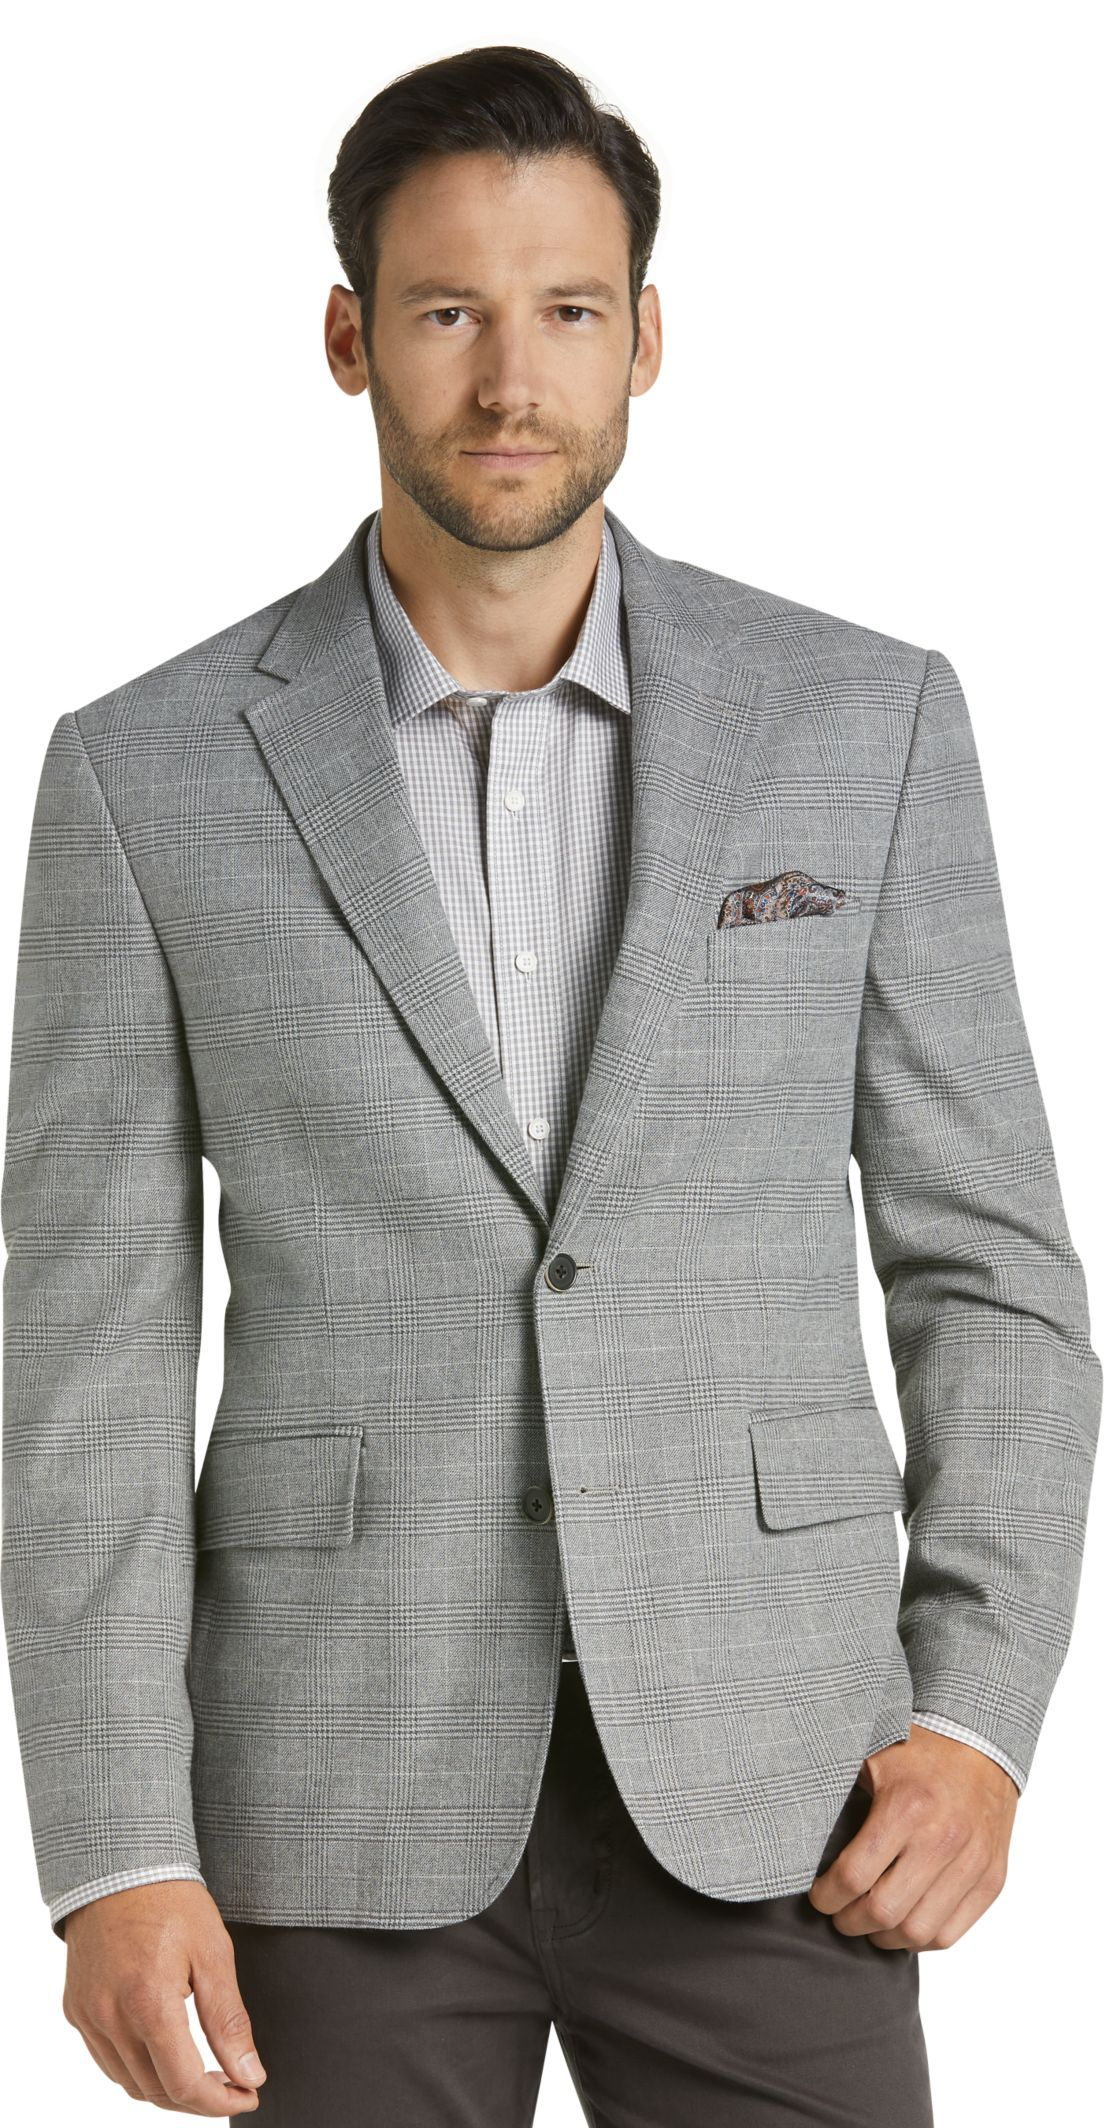 dd29ff253b0 Reserve Collection Tailored Fit Plaid Casual Jacket - Big   Tall